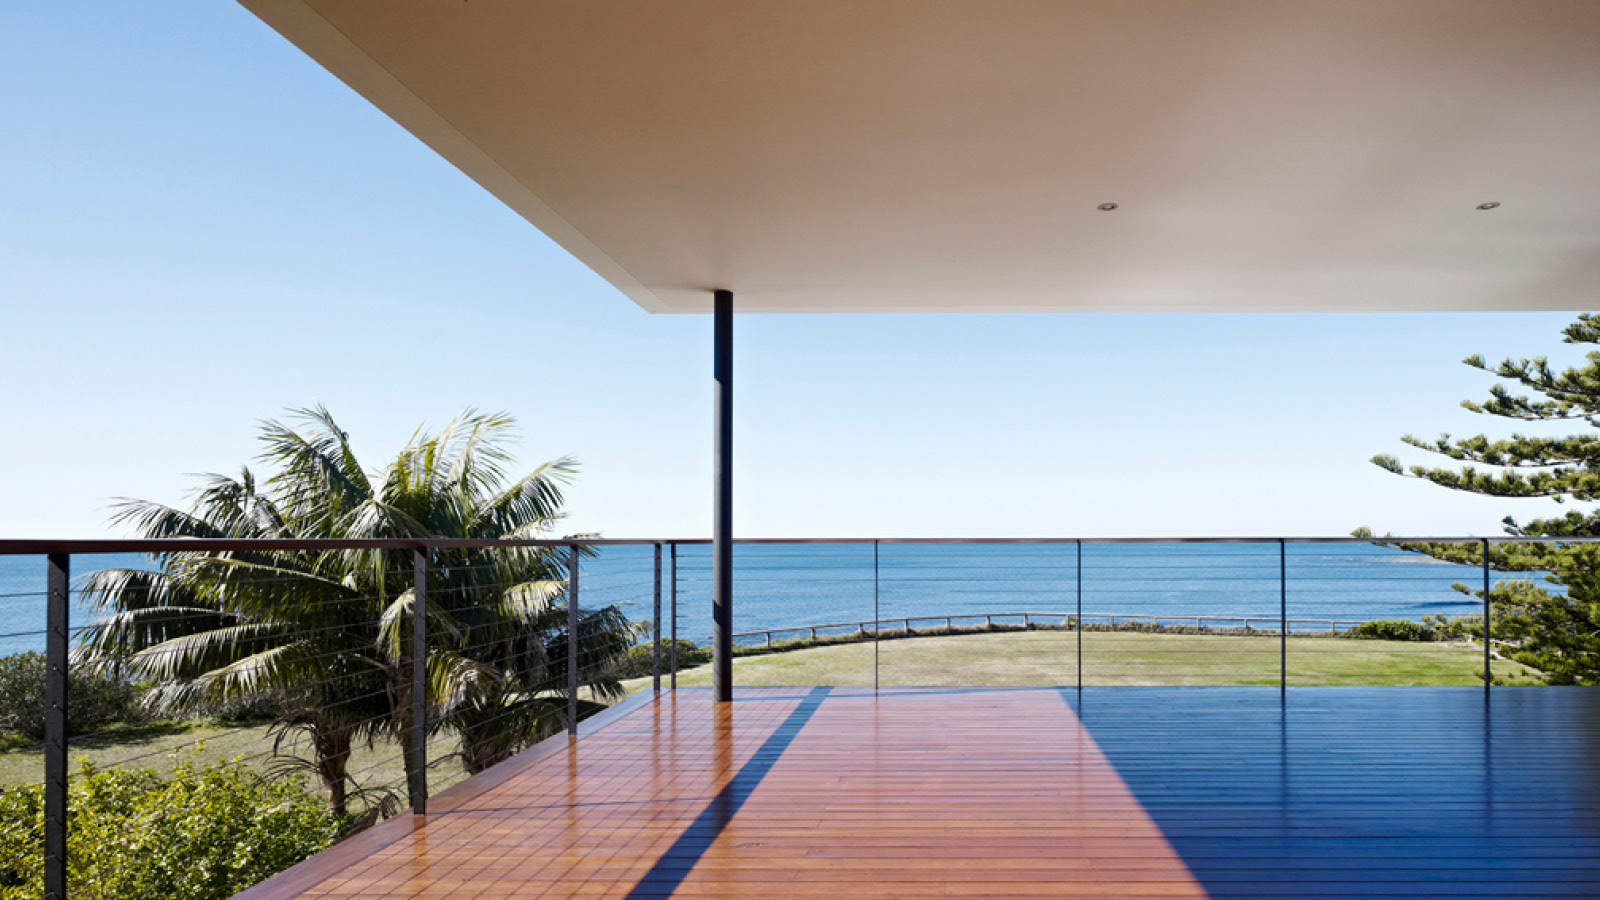 peninsula beach house4.jpg